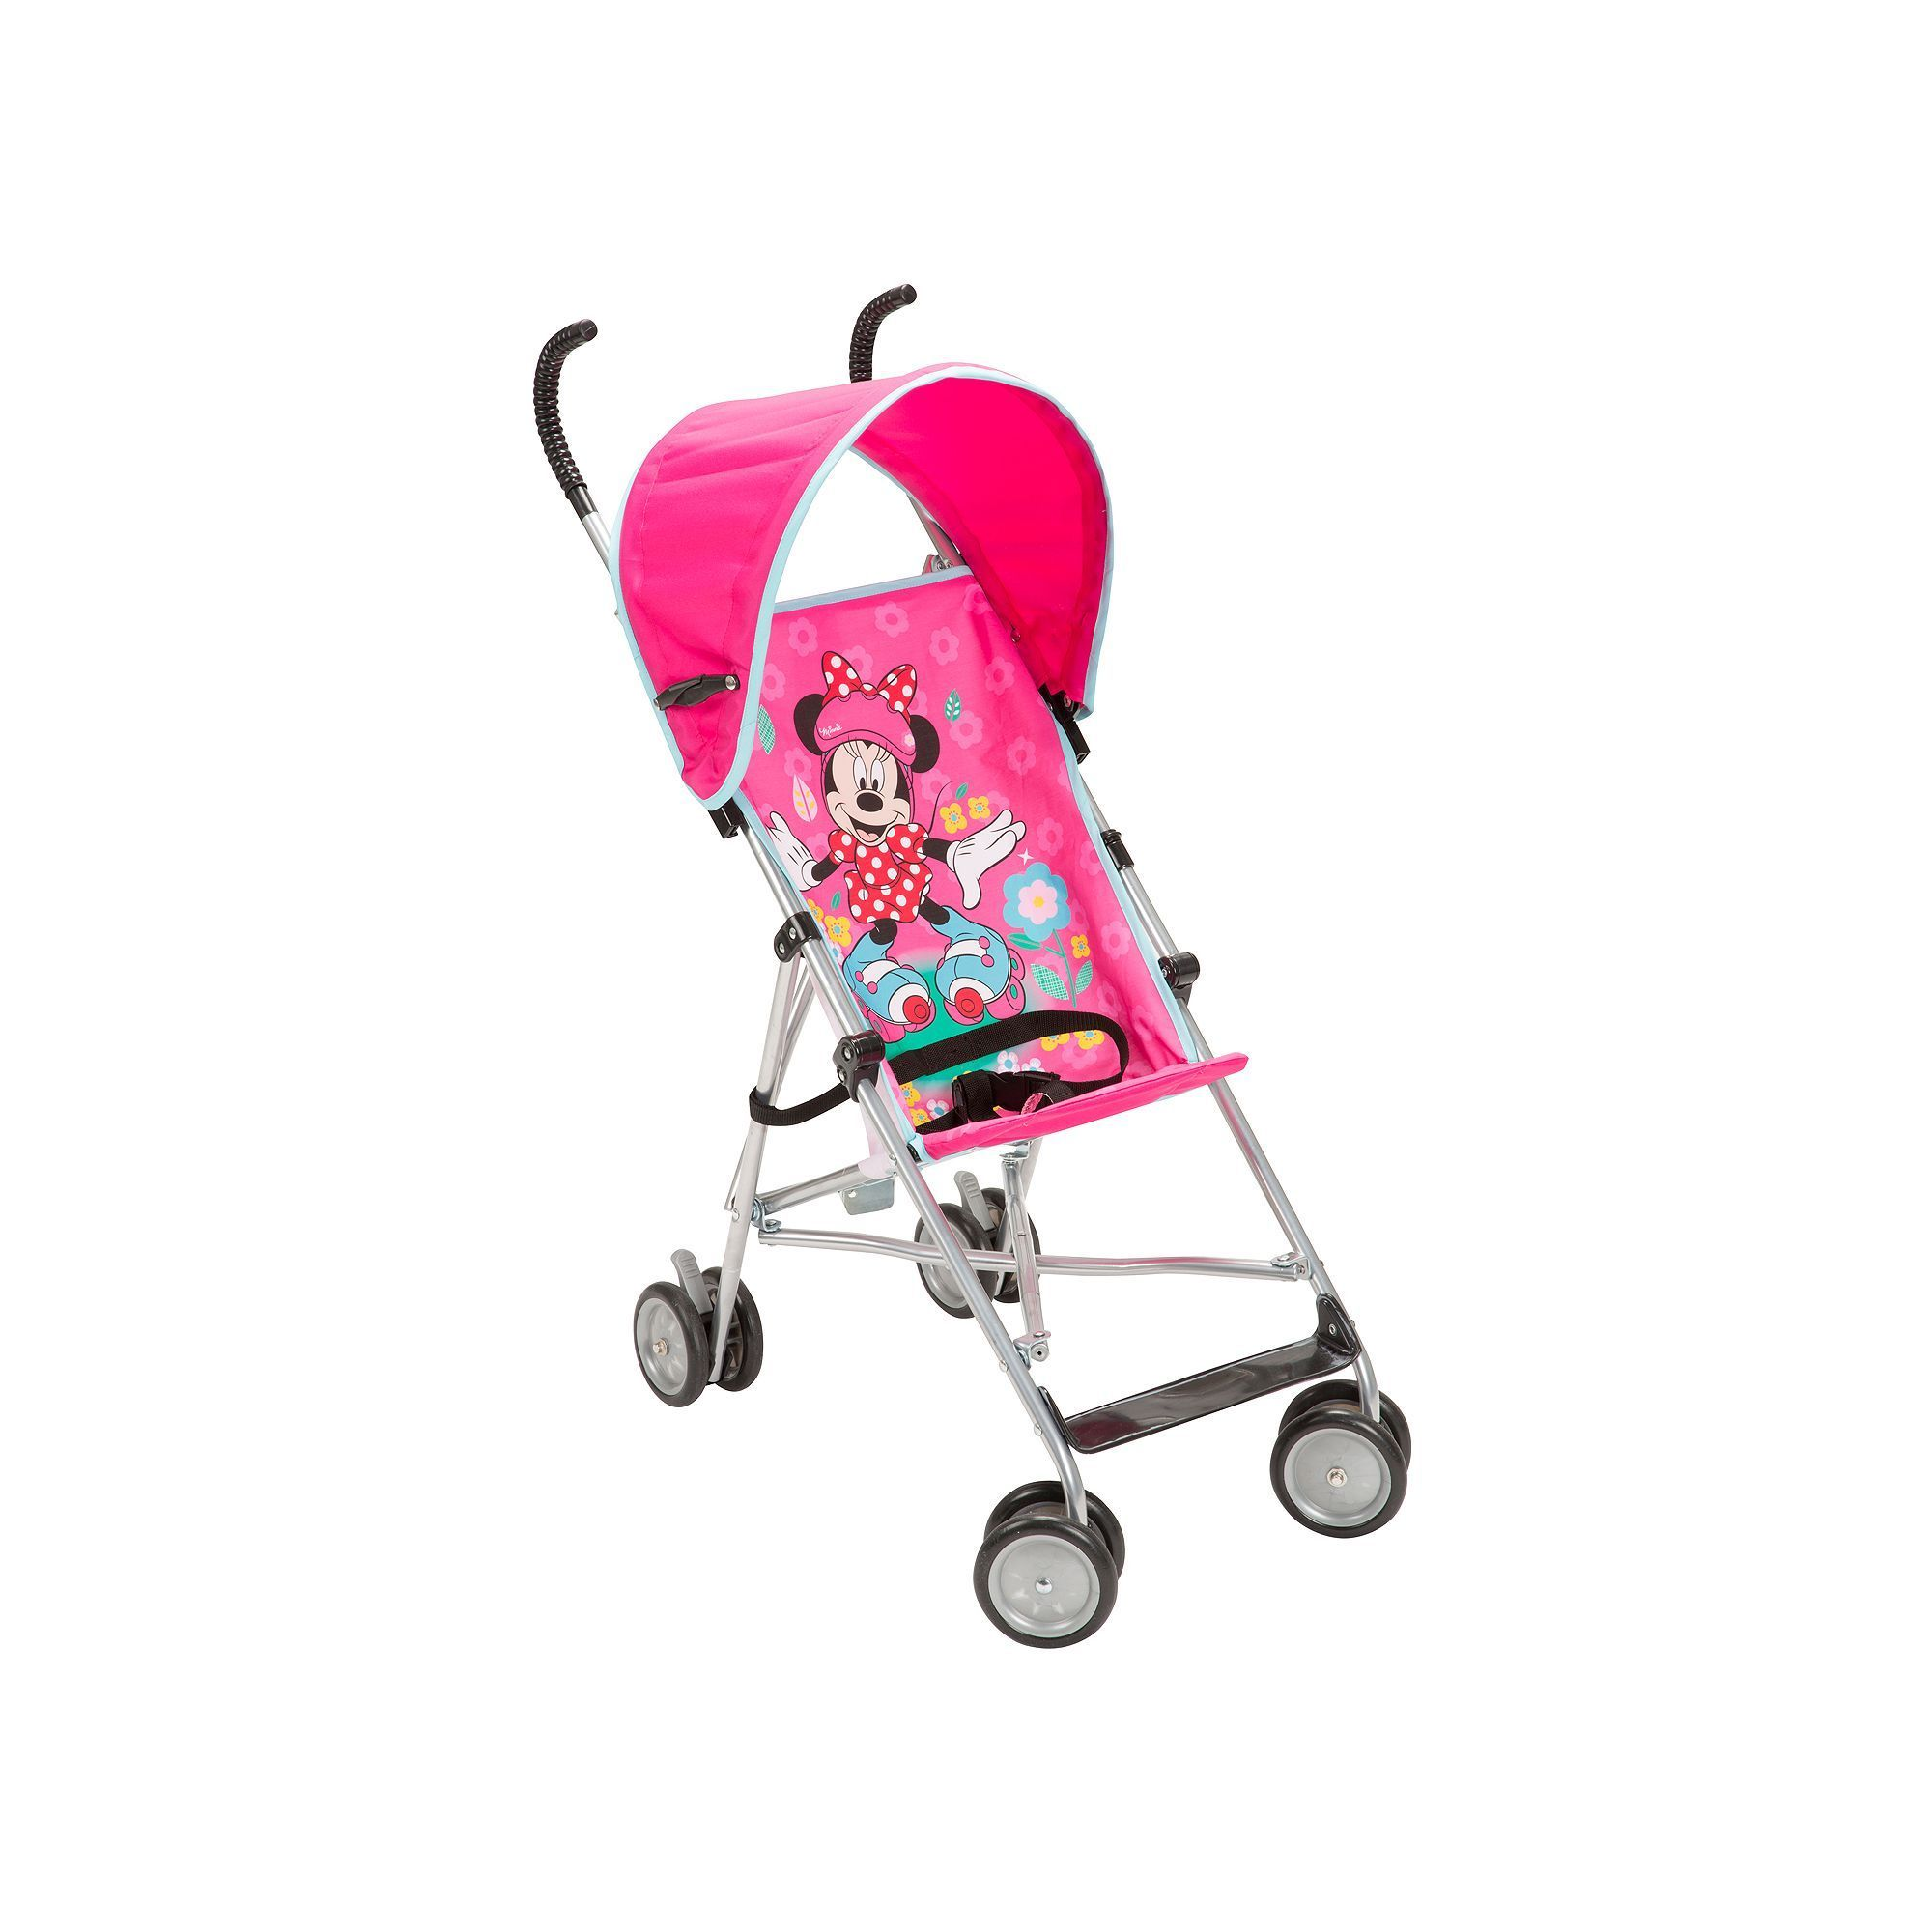 Disney's Minnie Mouse Roller Skates Umbrella Stroller with